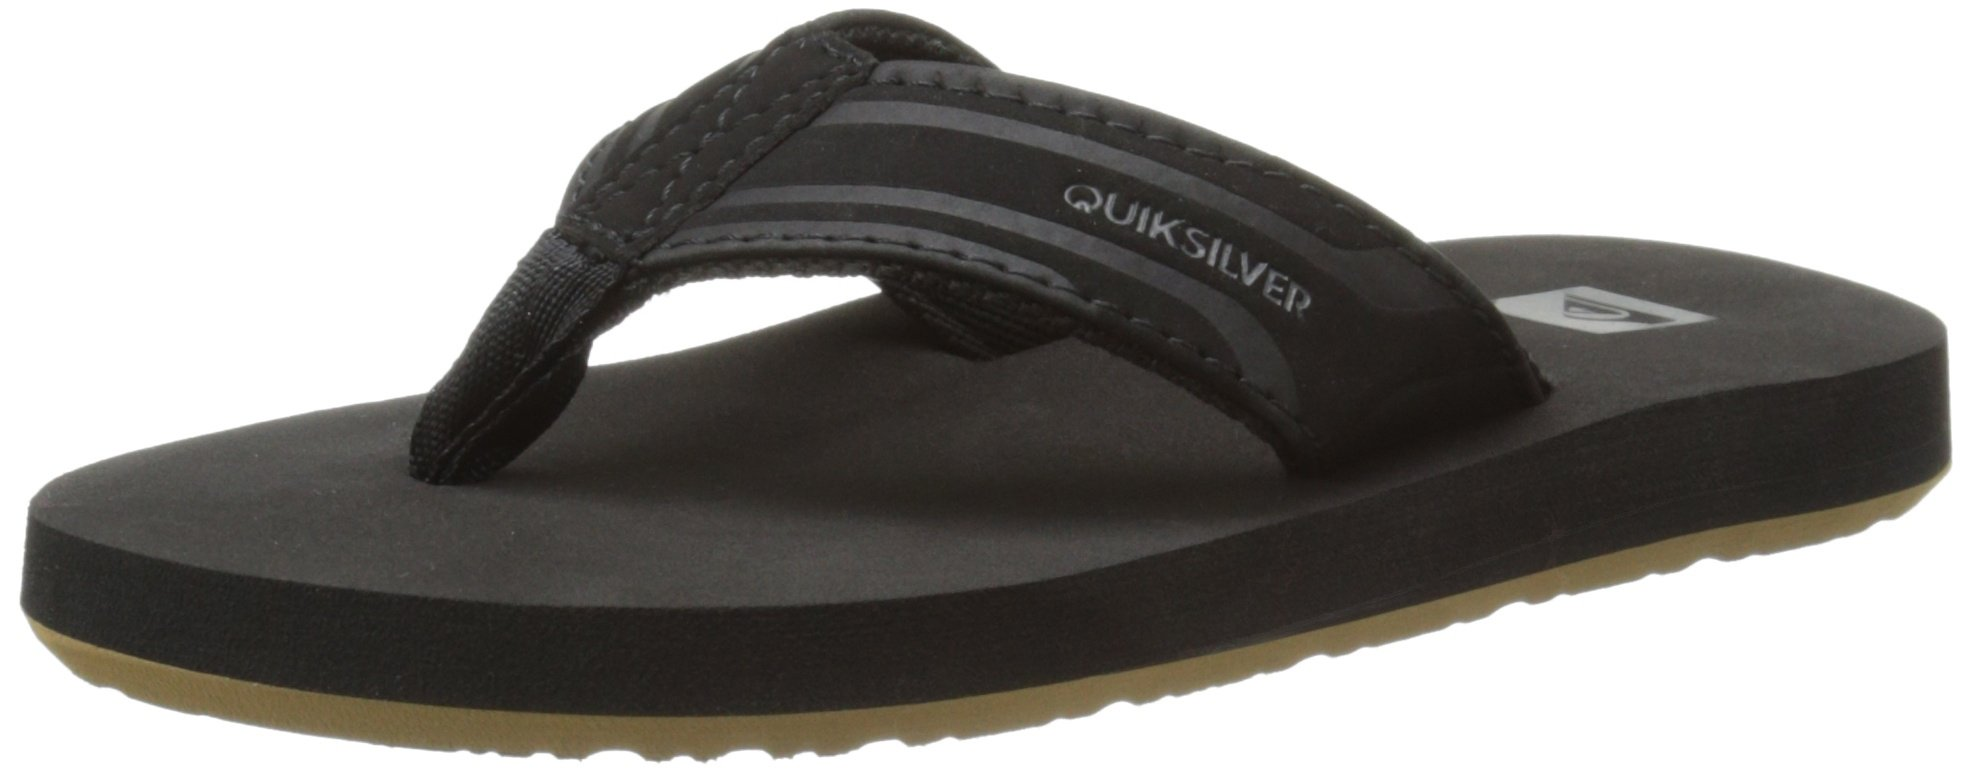 Quiksilver Monkey Wrench Youth Sandal (Toddler/Little Kid/Big Kid), Black/Black/Brown, 10 M US Toddler